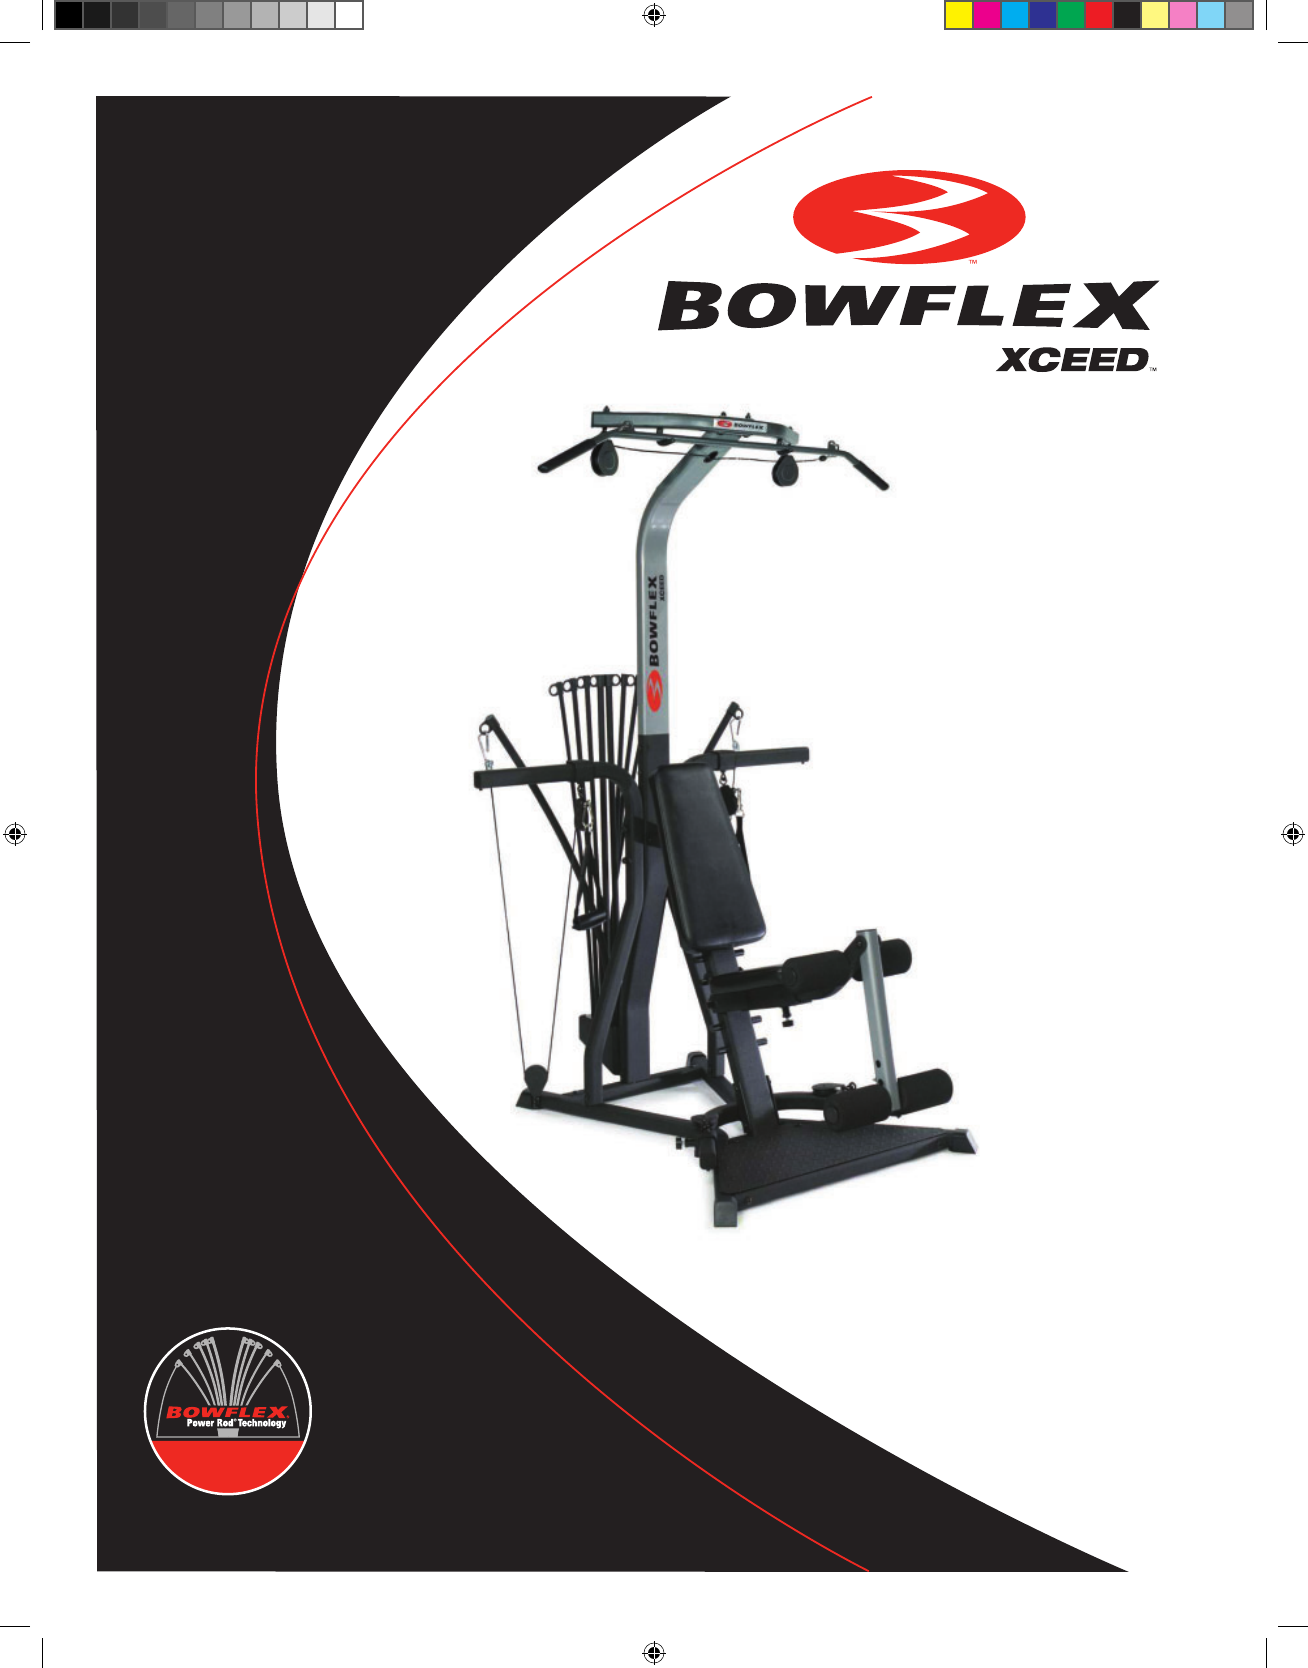 bowflex home gym xceed user guide manualsonline com rh fitness manualsonline com bowflex xceed assembly instructions Bowflex Xceed Workout Chart